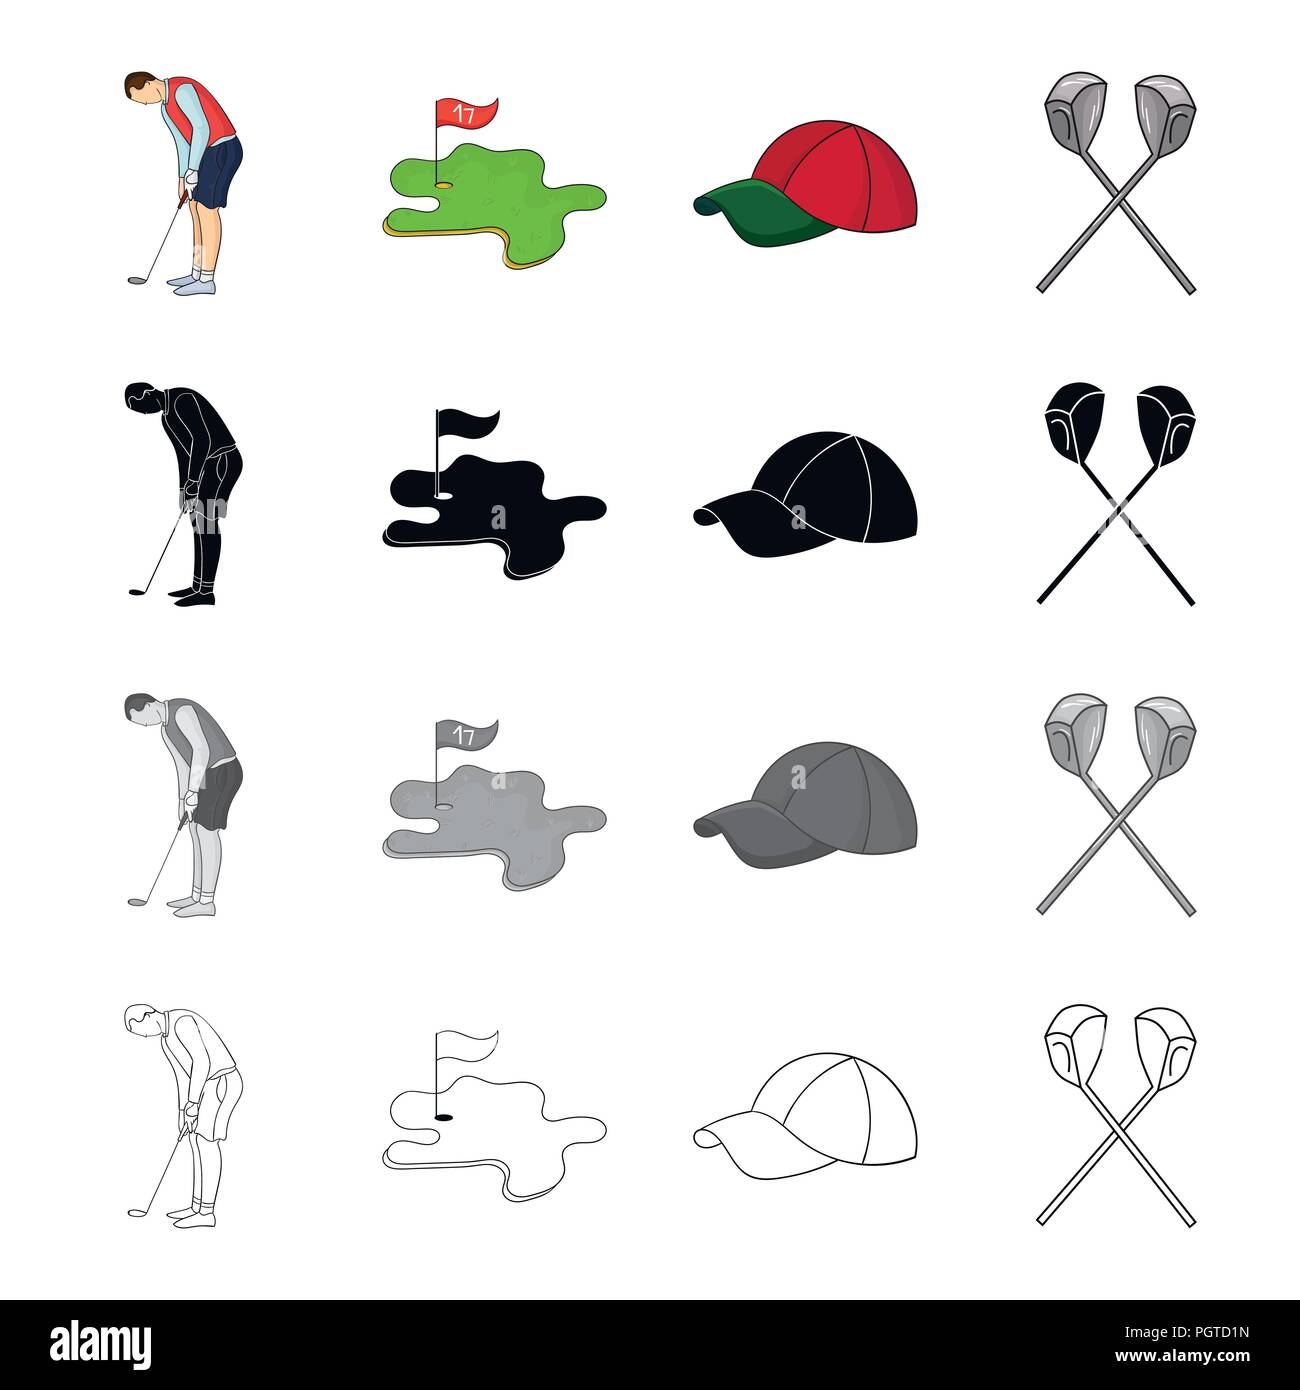 golfer with stick golf course cap crossed clubs golf set